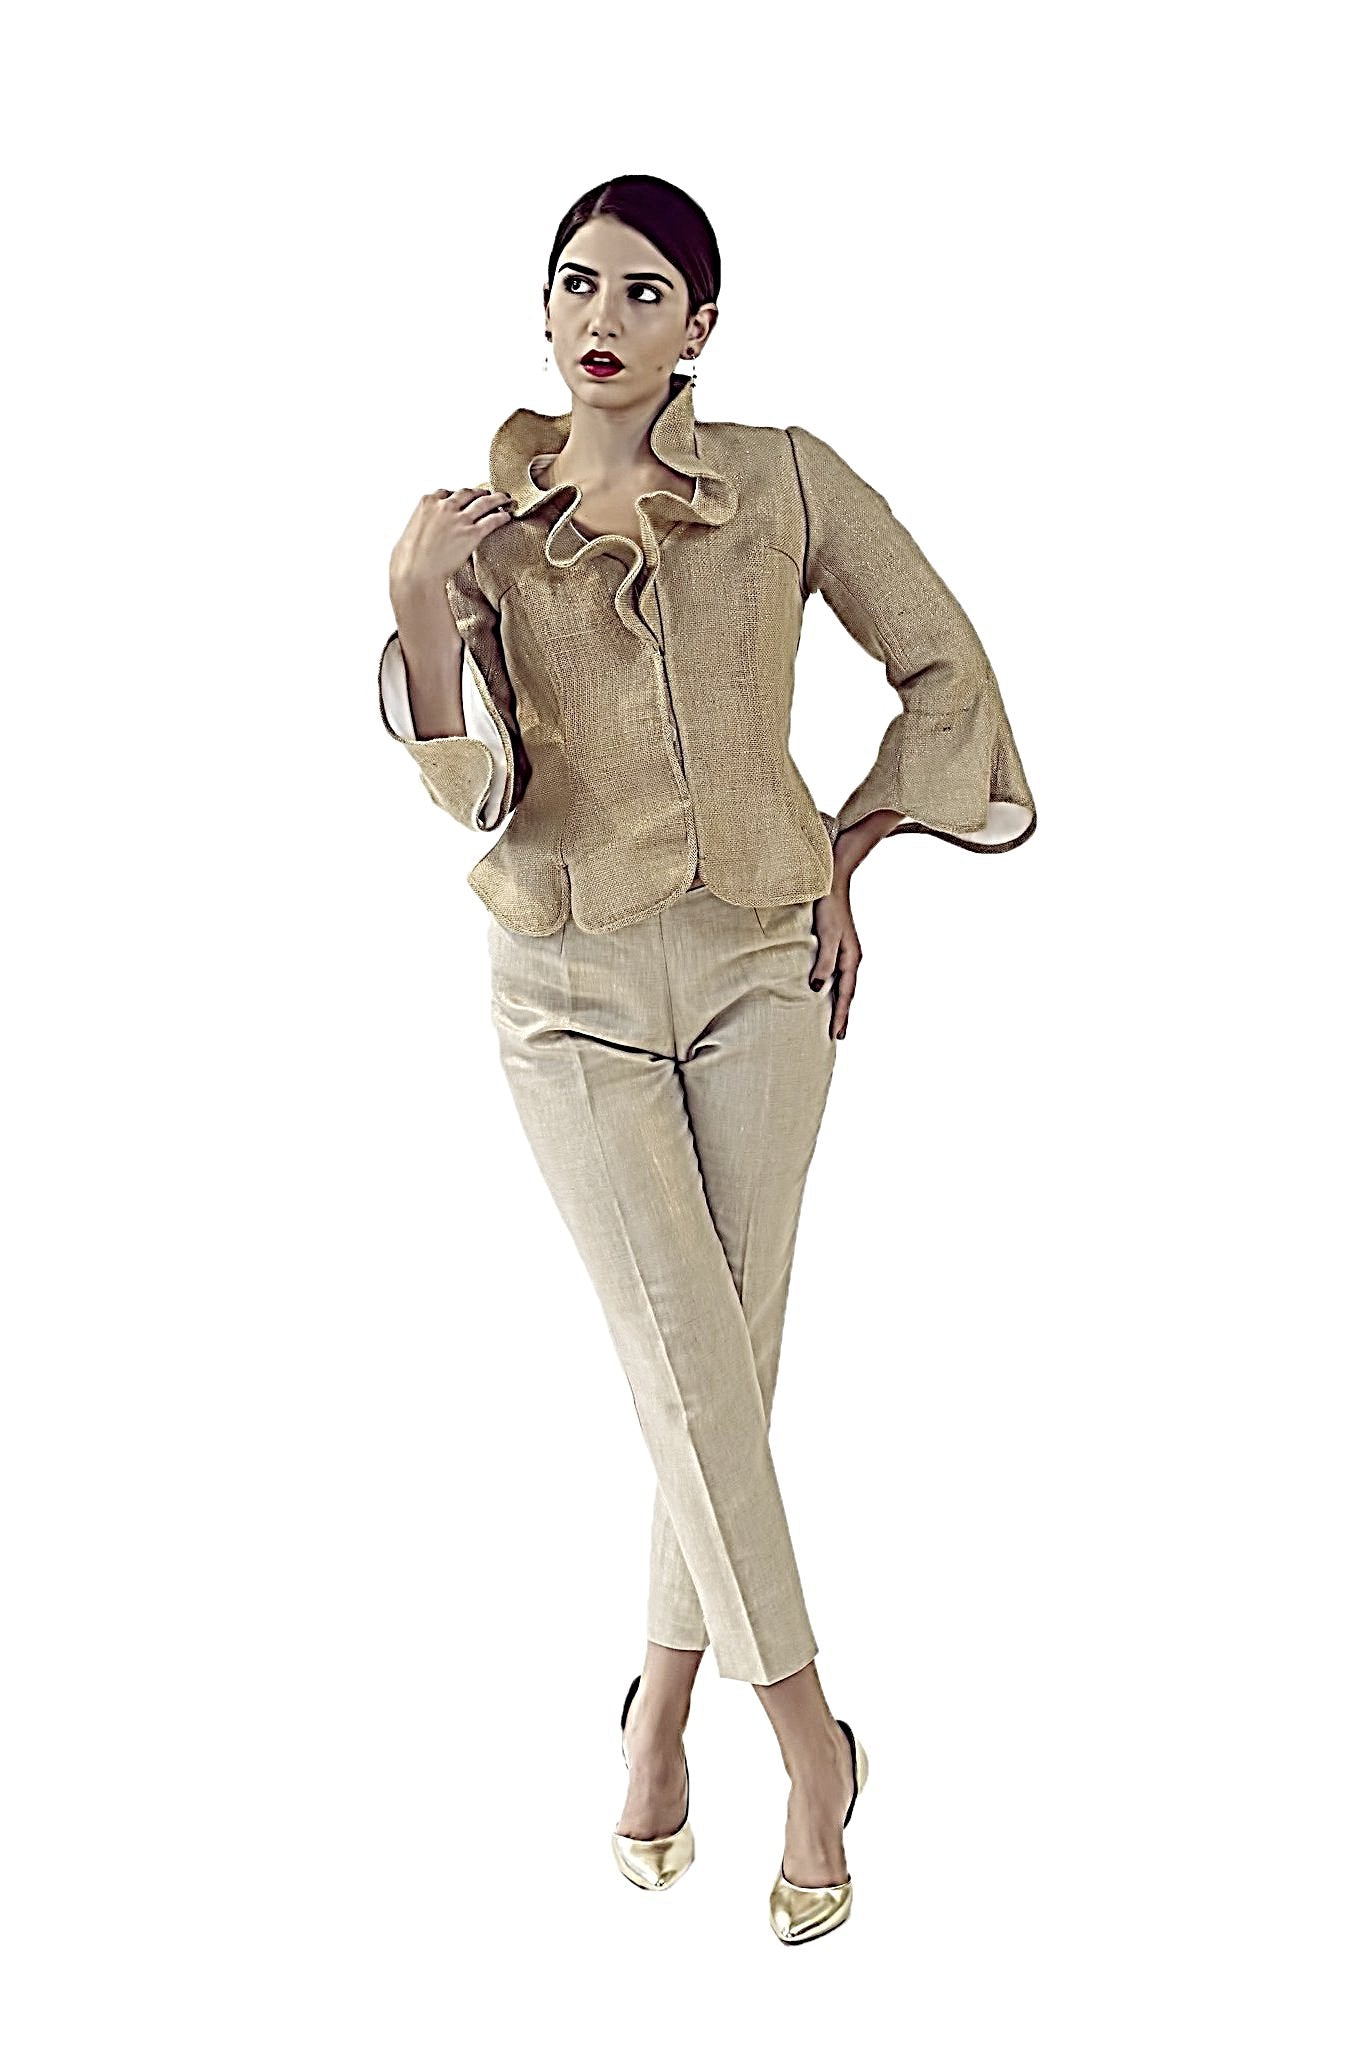 RESORT COLLECTION  DAVID MAISON DM-5397T-GOLD BURLAP JACKETRESORT COLLECTION  DAVID MAISON DM-5397T-GOLD BURLAP JACKET, THE RESORT COLLECTION TOPS 2017, DAVID MAISON, DAVID MAISON  - DAVID MAISON